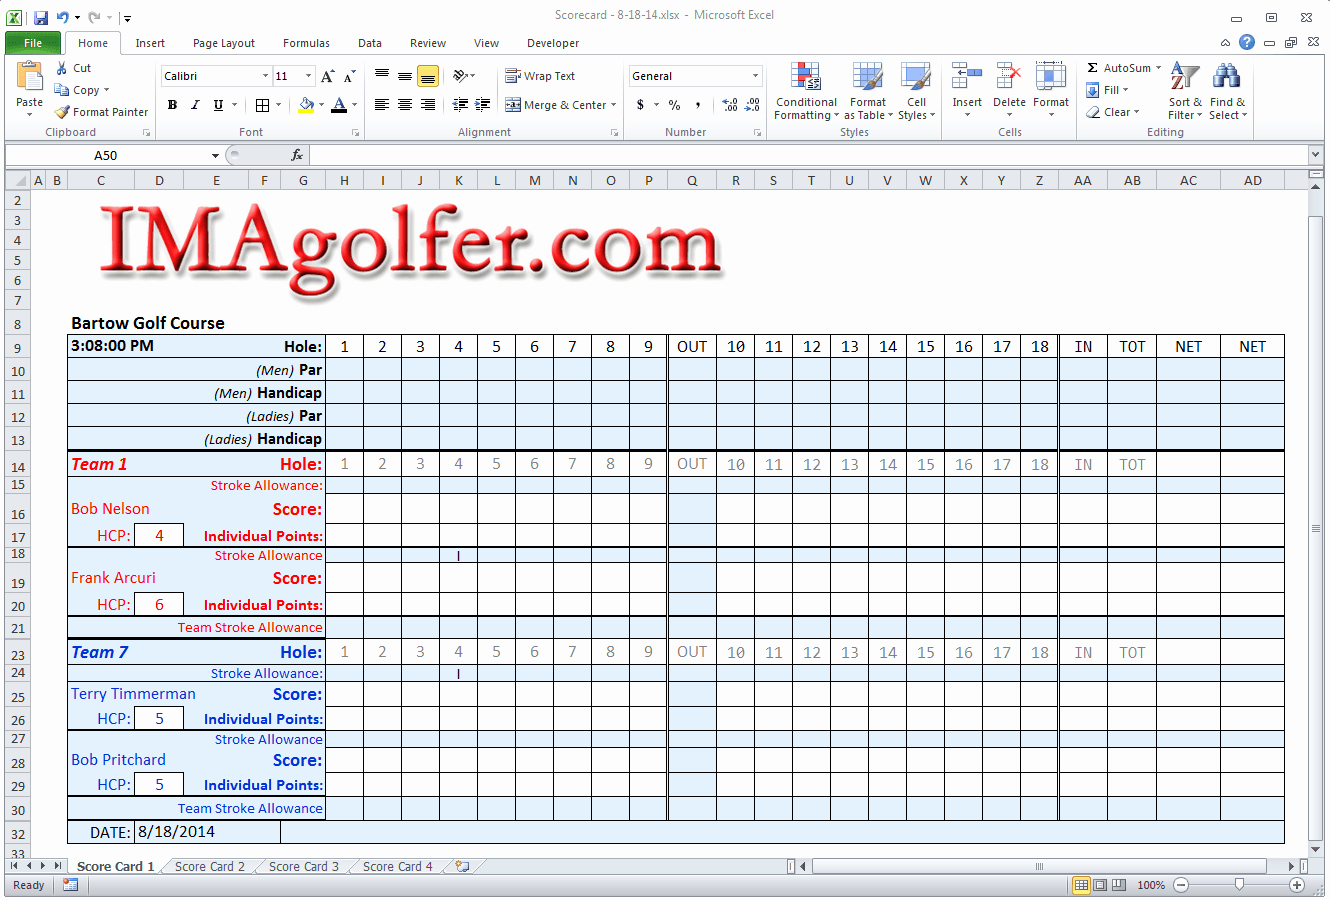 Employee Performance Scorecard Template Excel Beautiful Employee Performance Scorecard Template Excel Free Invoice